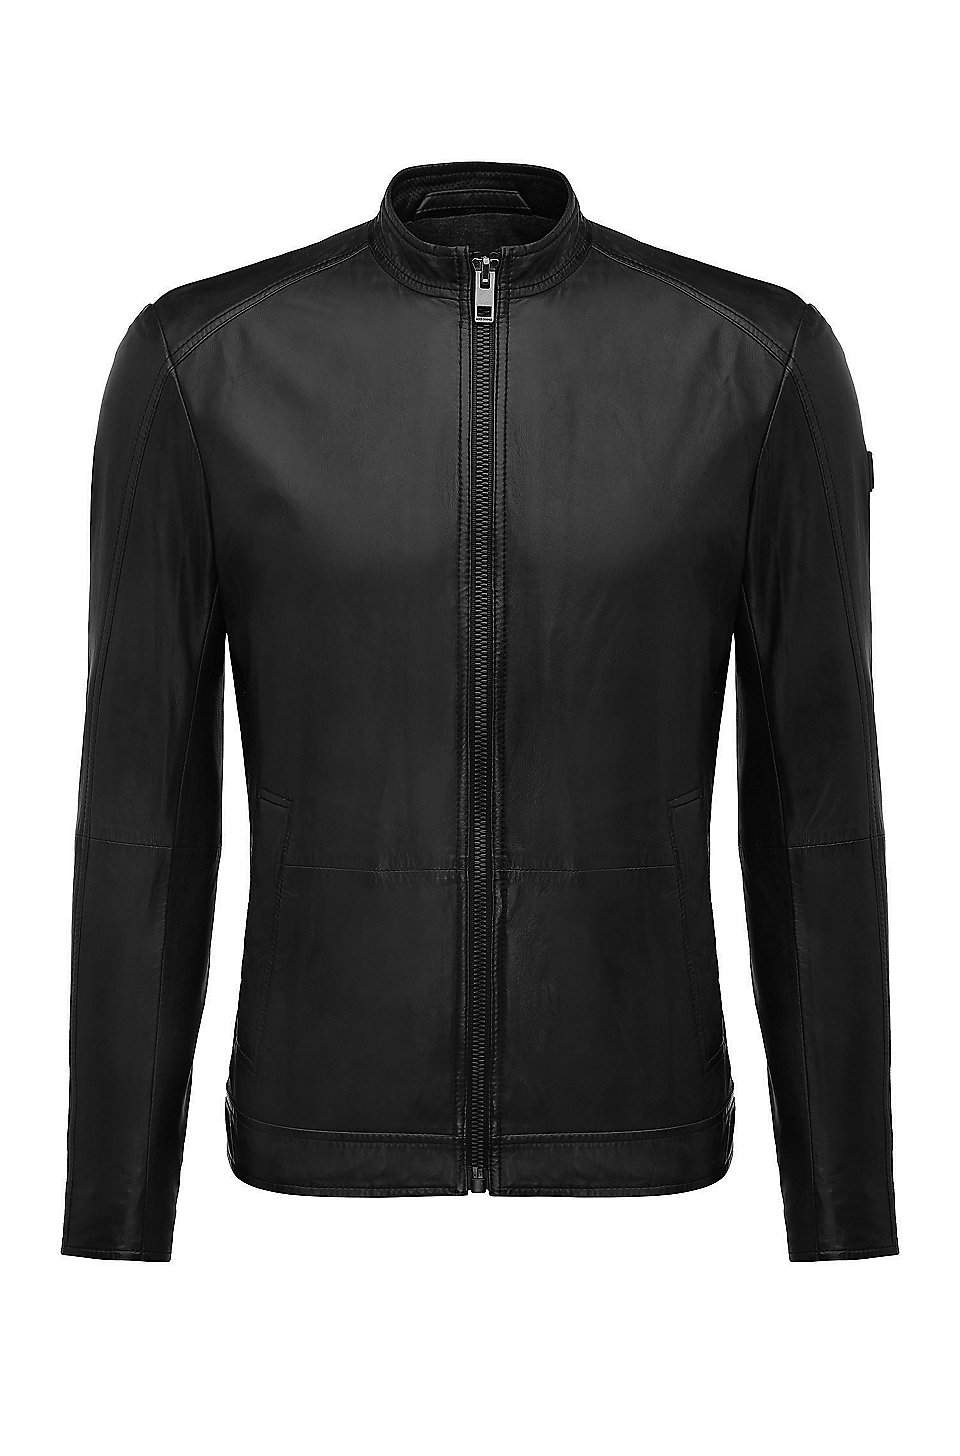 Leather jacket brisbane - Slim Fit Leather Jacket With Stand Collar Black